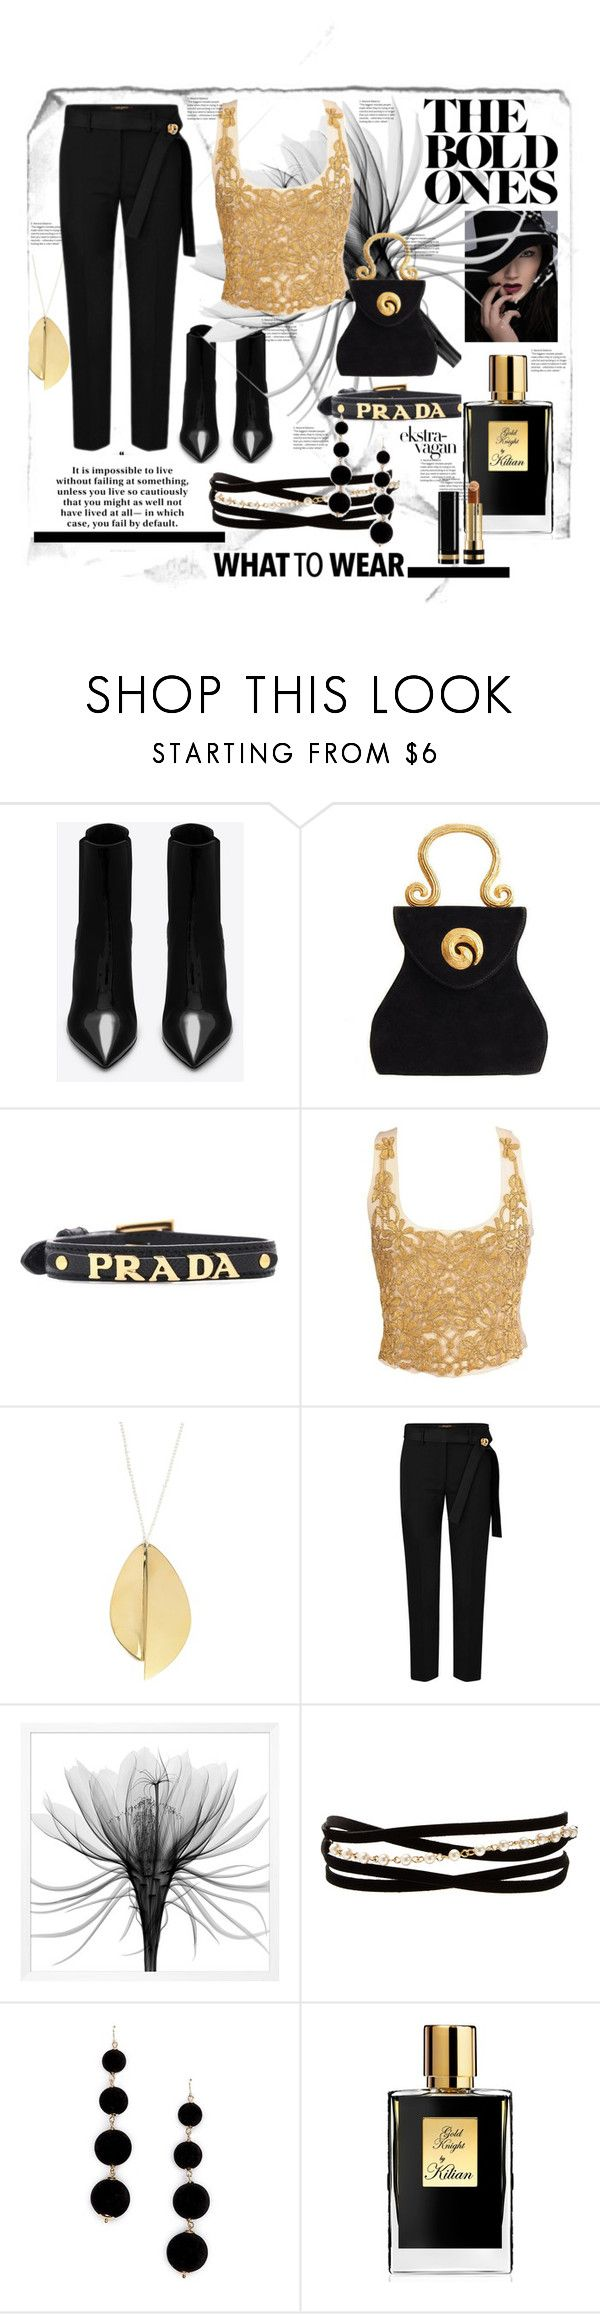 """""""style 193"""" by valerie-42 ❤ liked on Polyvore featuring Yves Saint Laurent, Edouard Rambaud, Prada, Kenneth Jay Lane, Forever 21, Kilian and Gucci"""